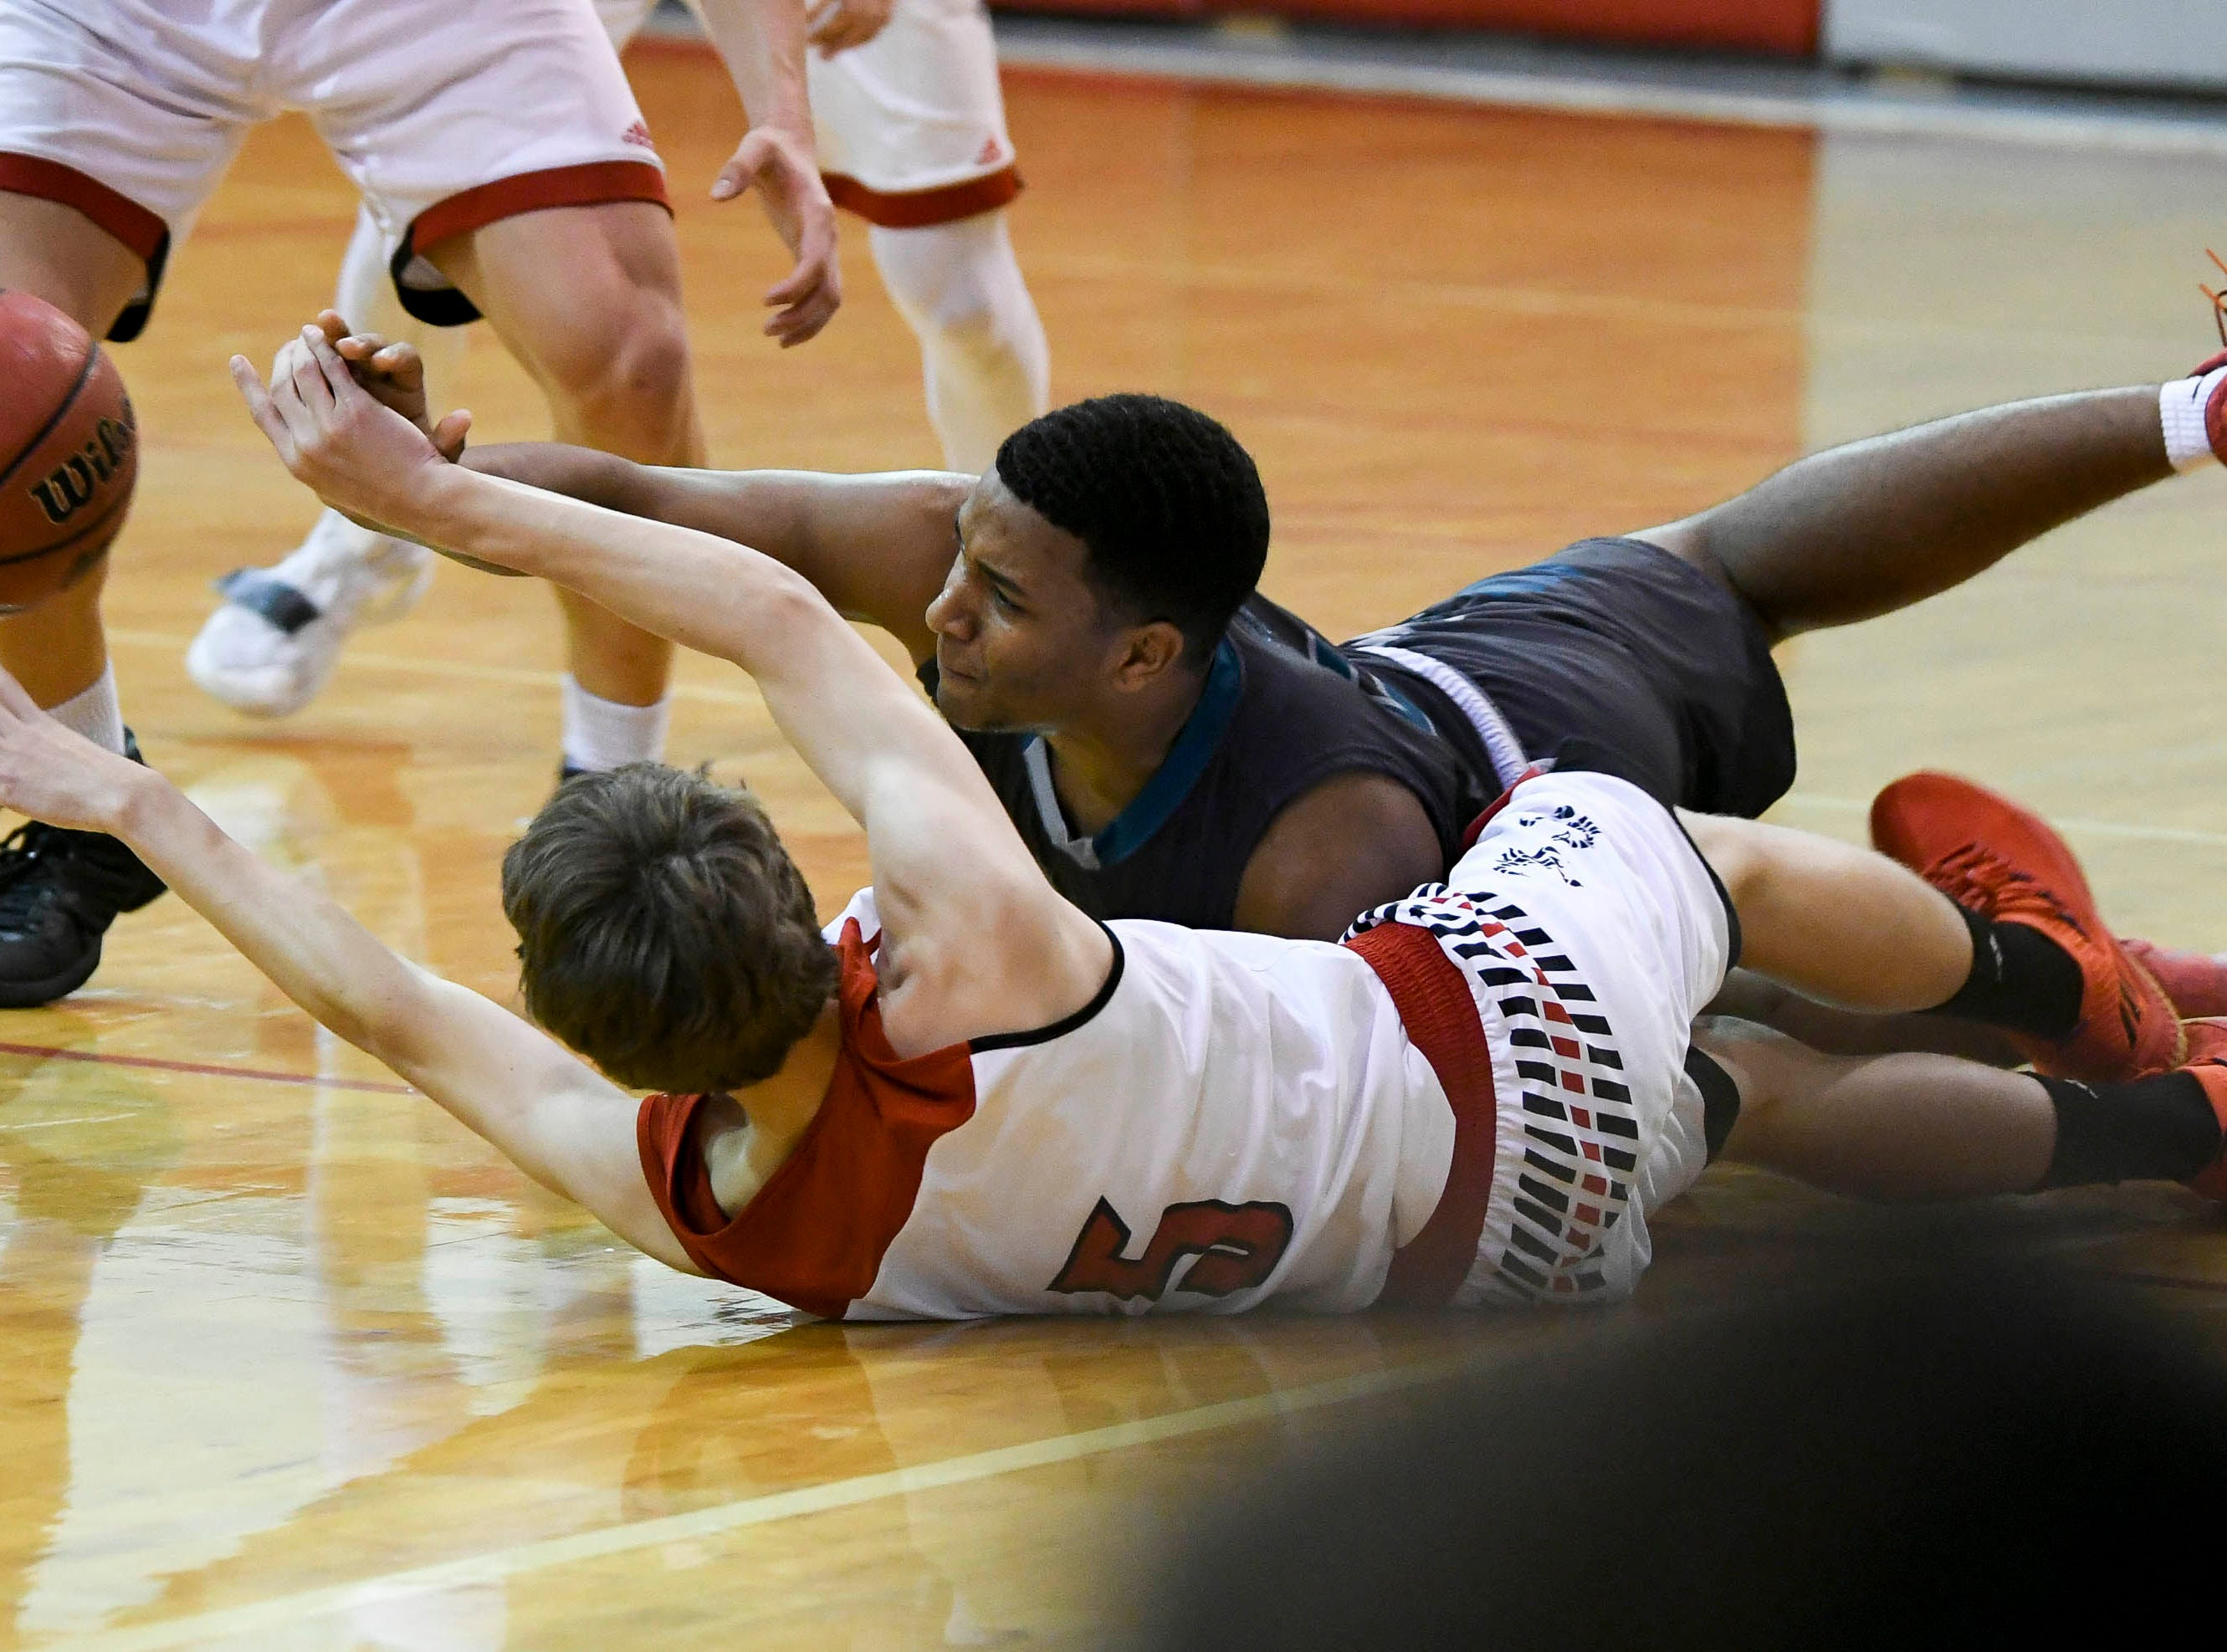 Oliver Pasque of Satellite and Kevin Sanchez of Bayside scramble for a loose ball during Tuesday's game at Satellite High.